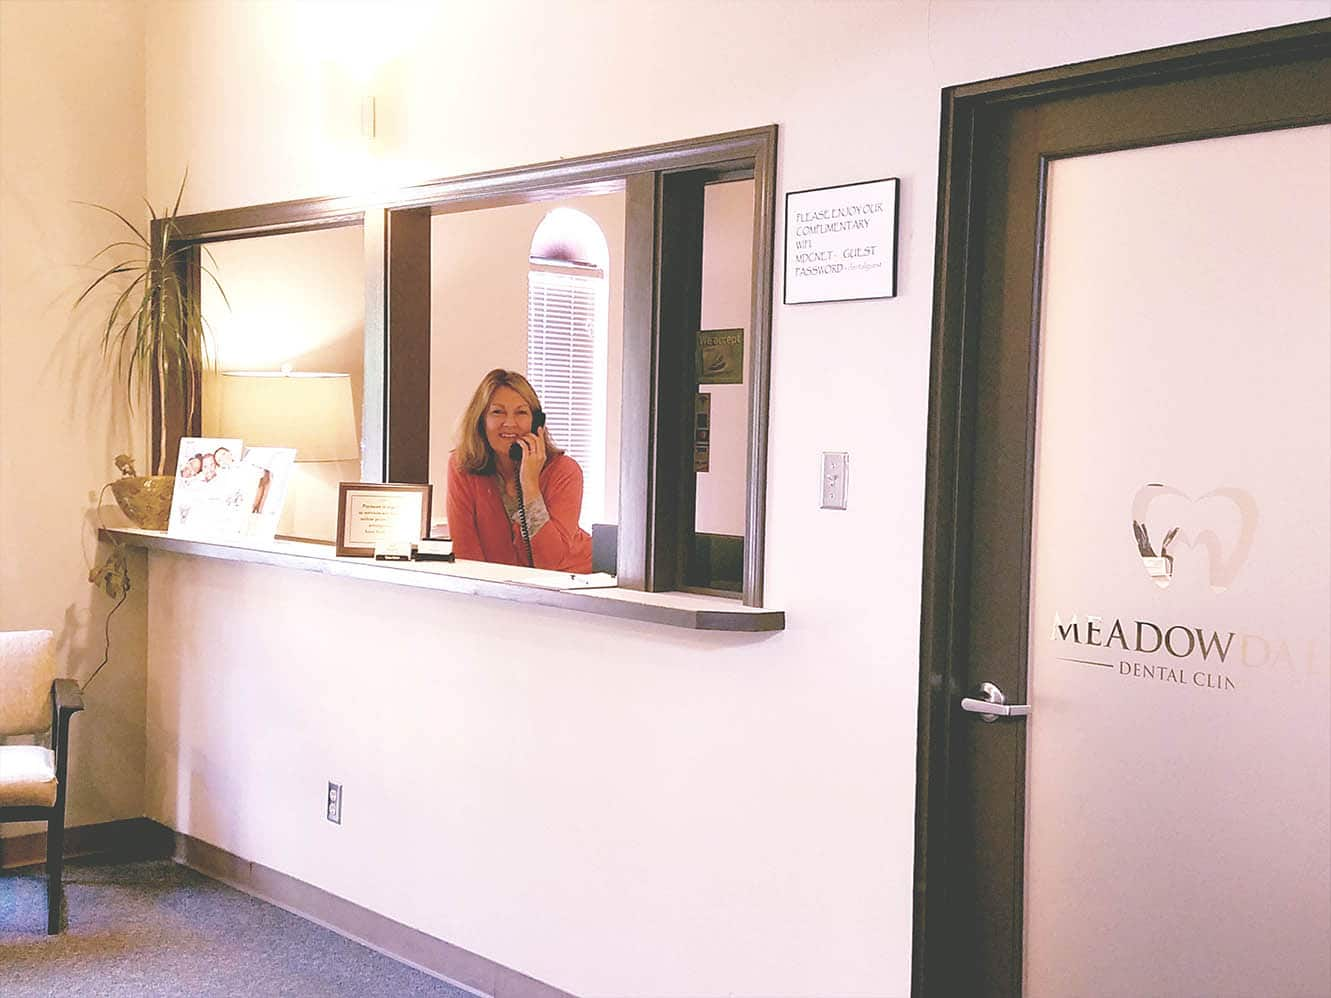 Meadowdale Dental Clinic Lynnwood WA Welcome Center